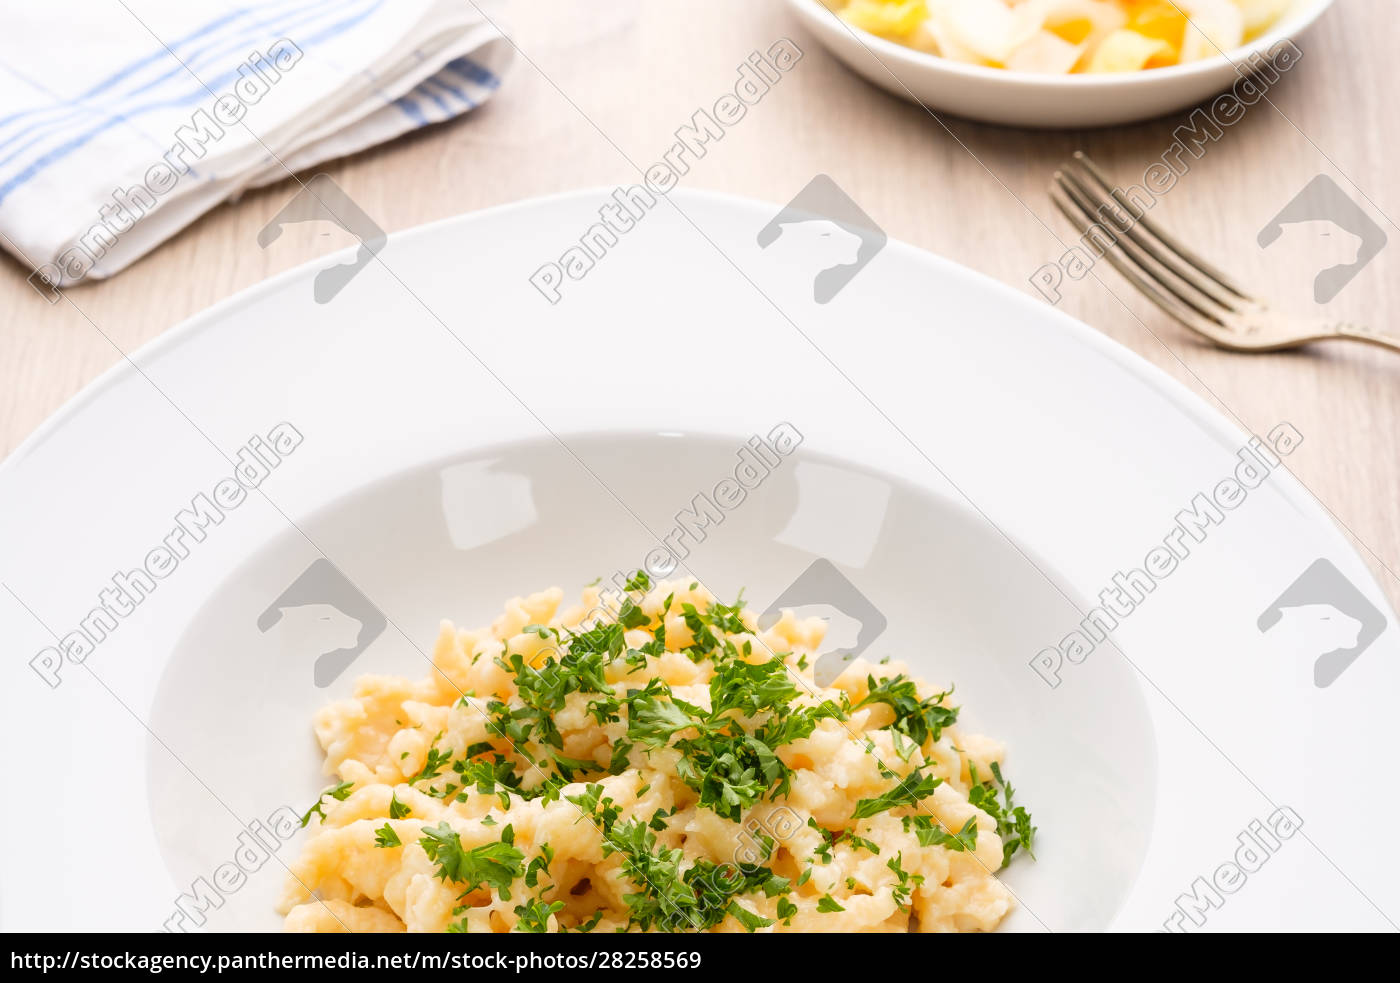 plate, with, cheese, noodles, and, chives - 28258569